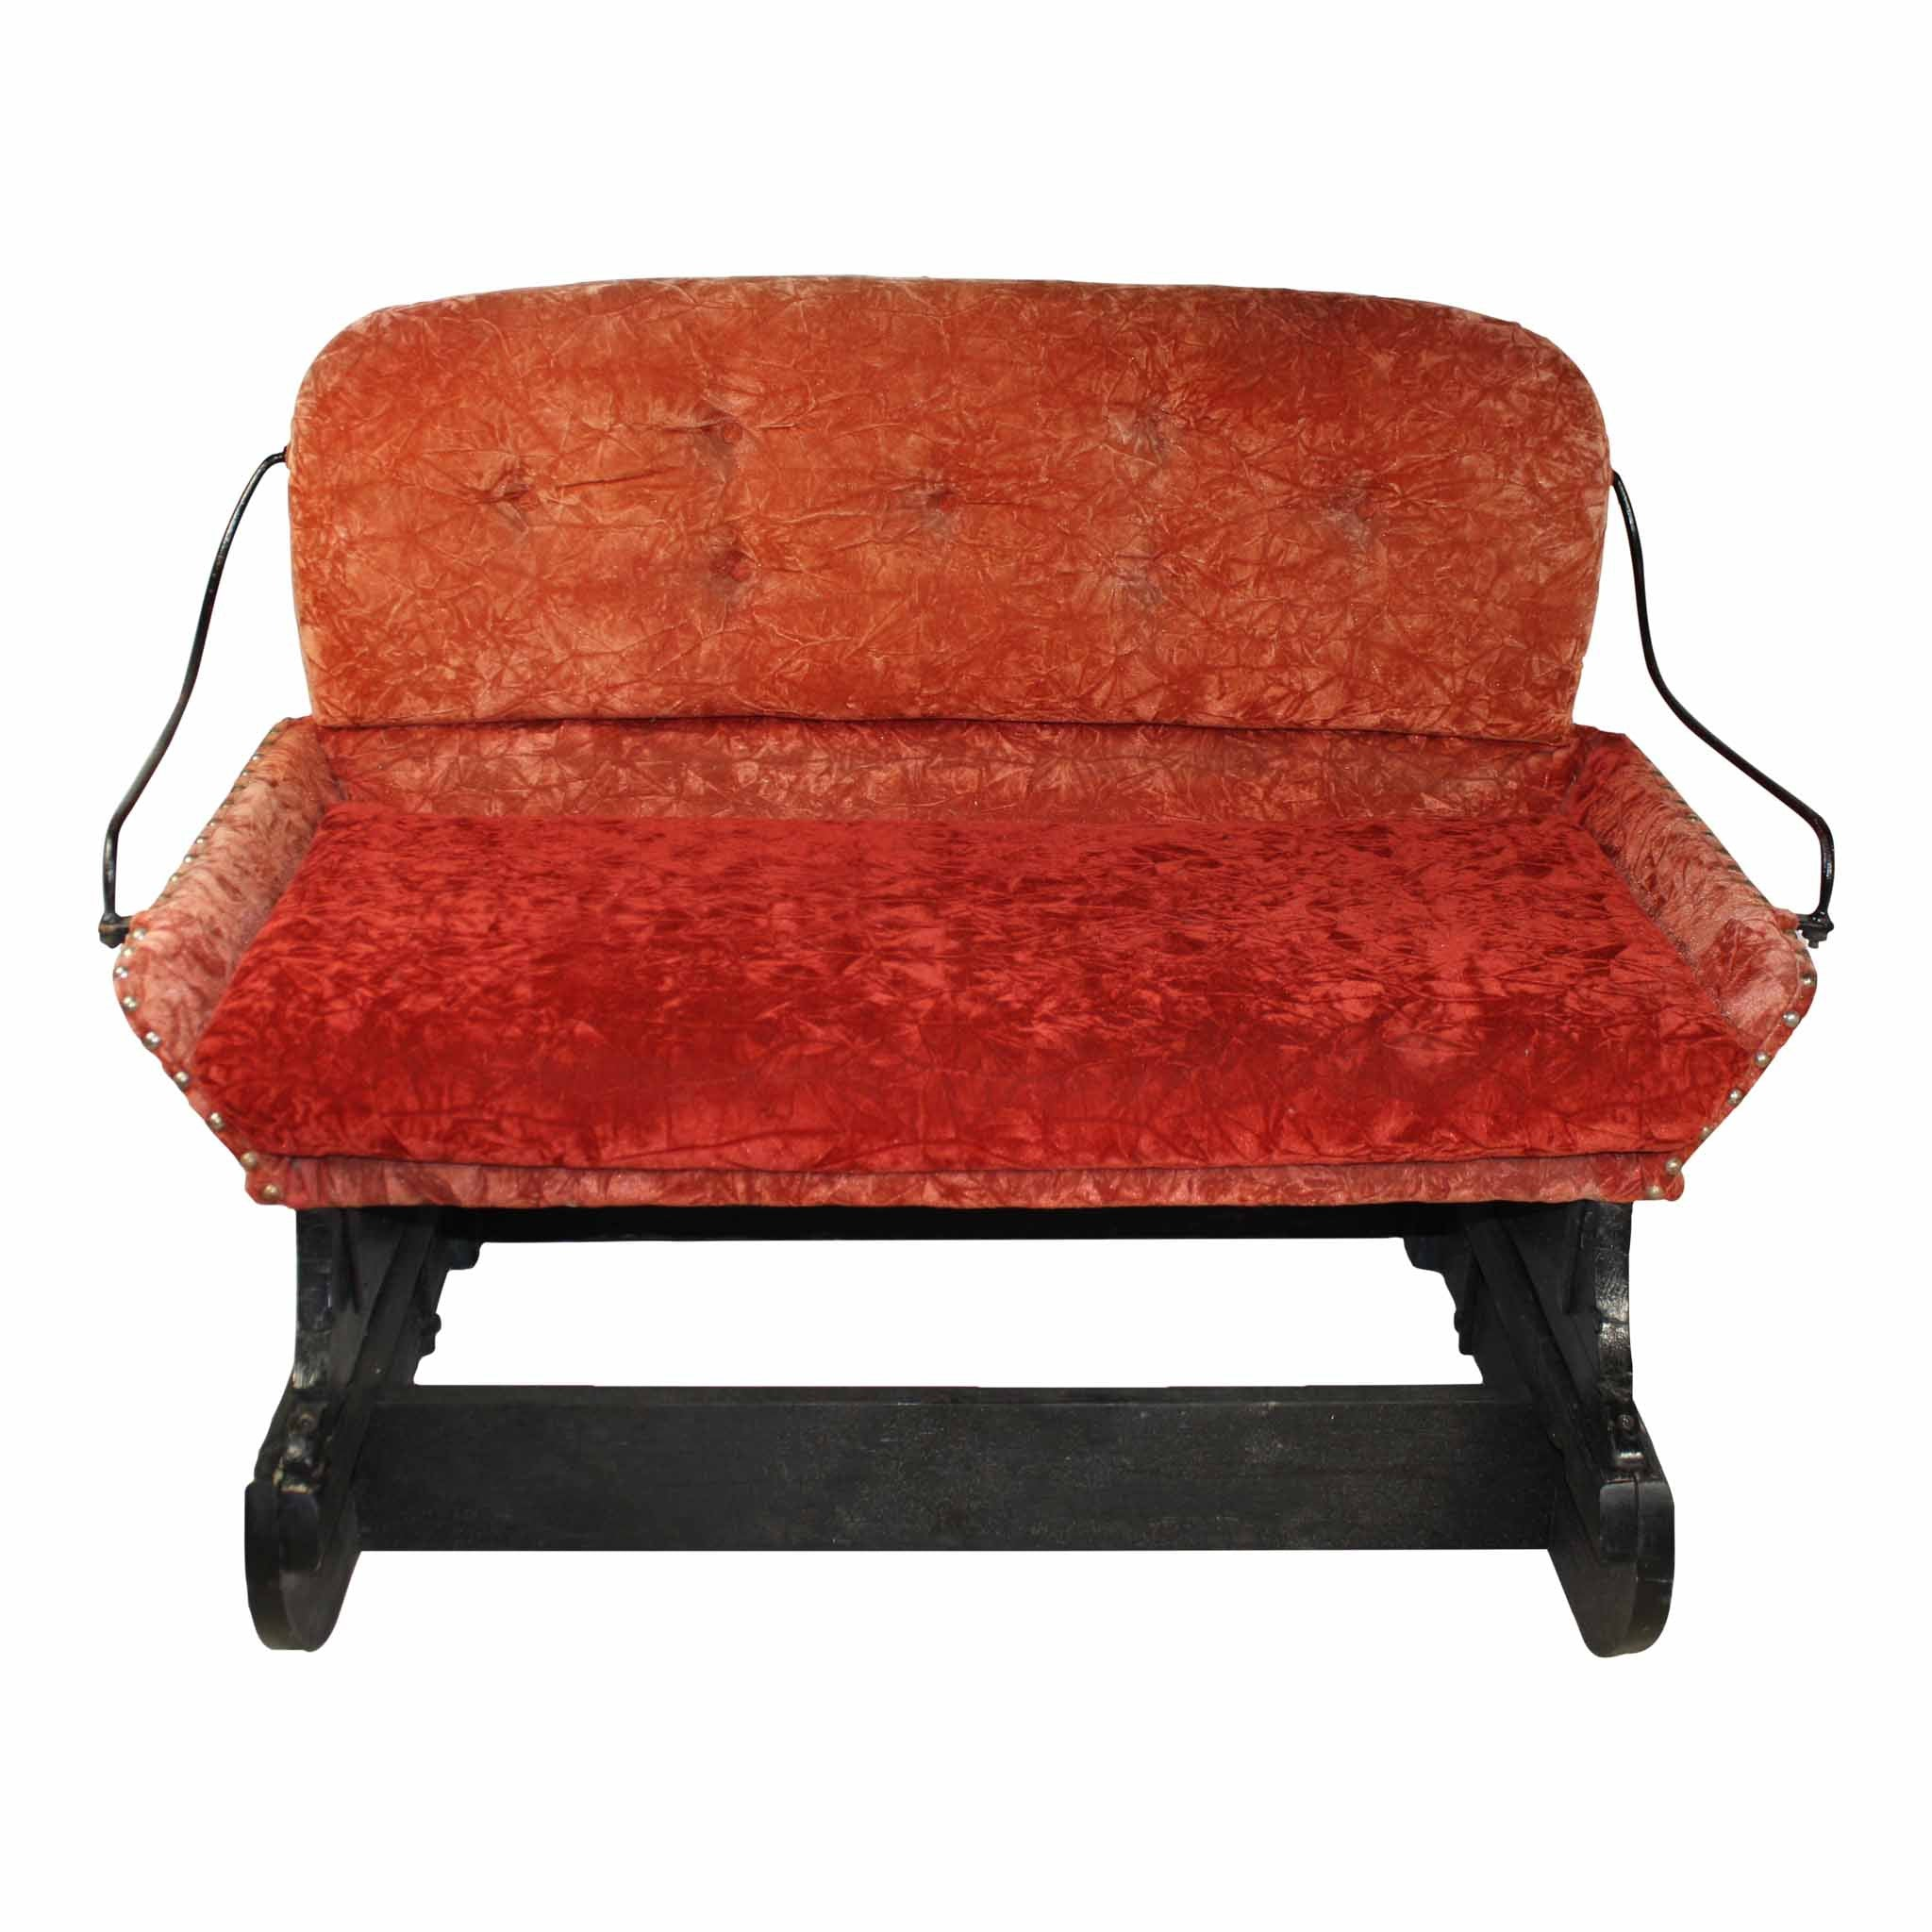 Sleigh Seat Bench-Red